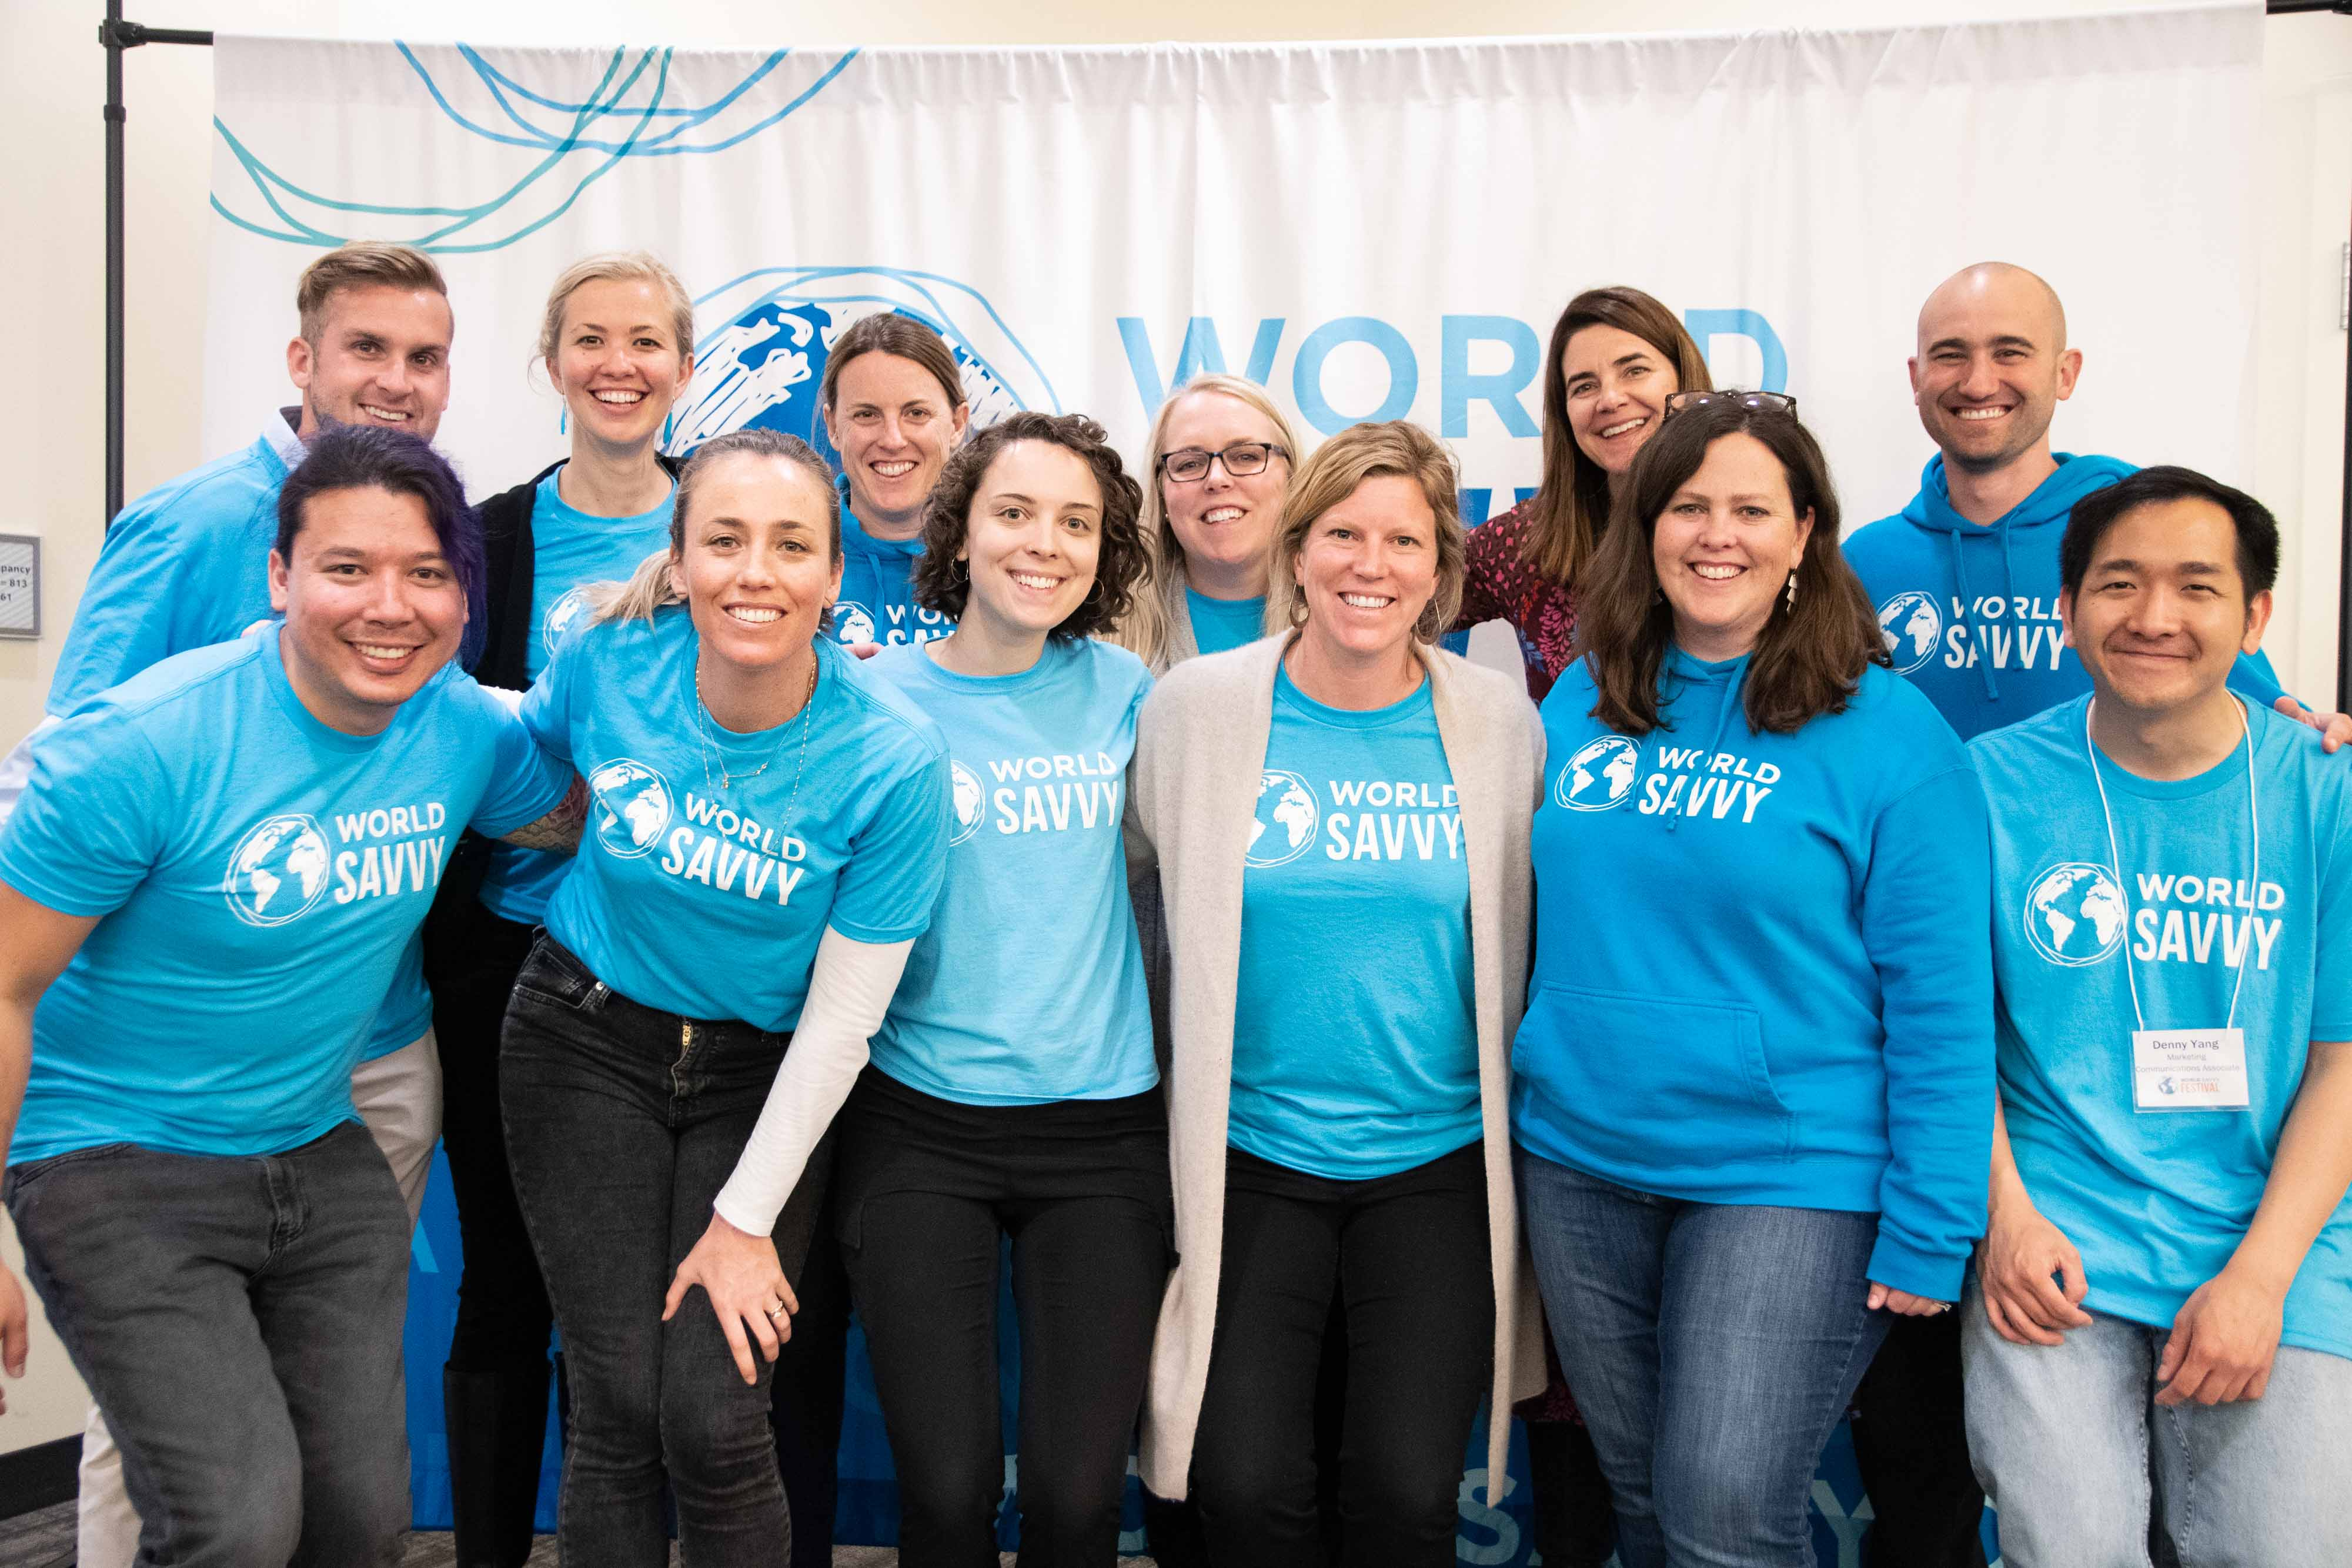 World Savvy Staff at the World Savvy Festival 2019 in Saint Paul, MN.